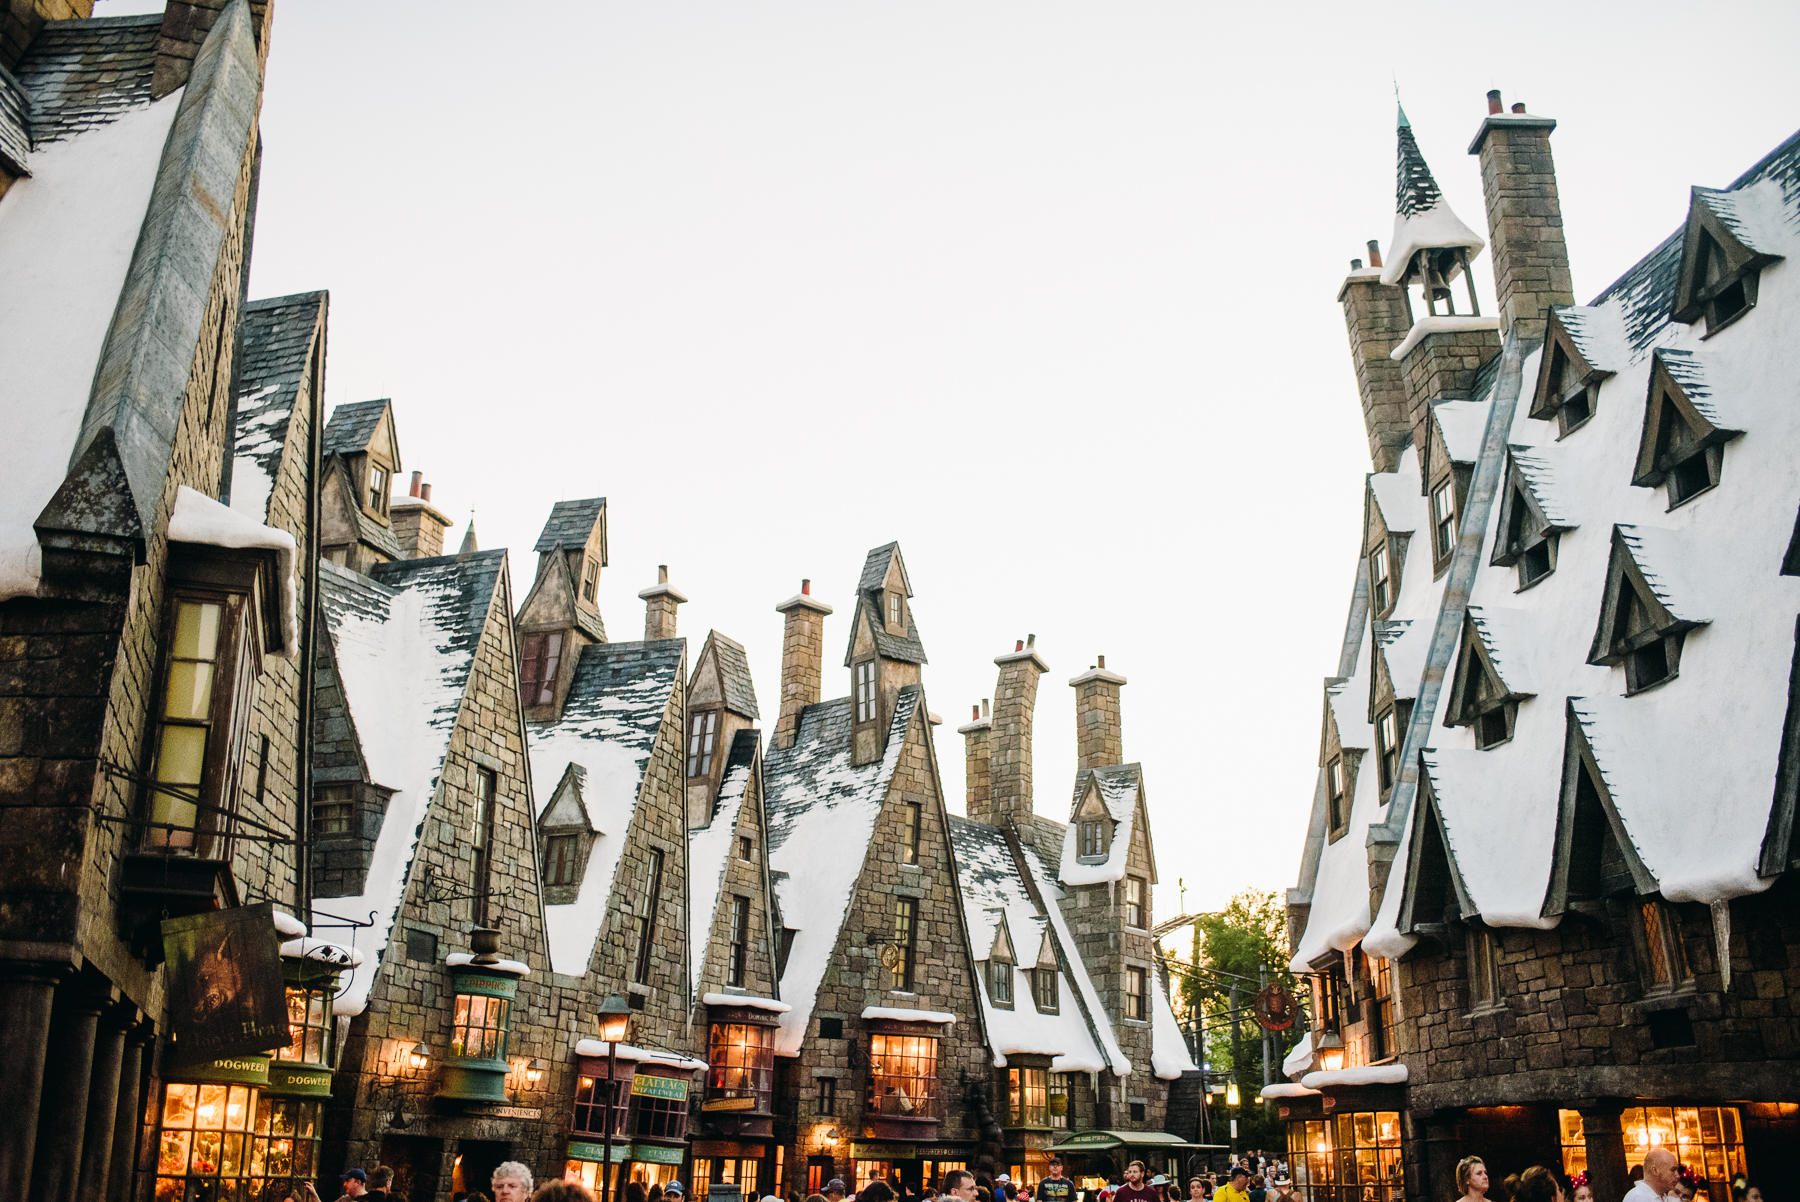 wizarding-world-of-harry-potter-florida-family-photographer-lifestyle-shoot-34